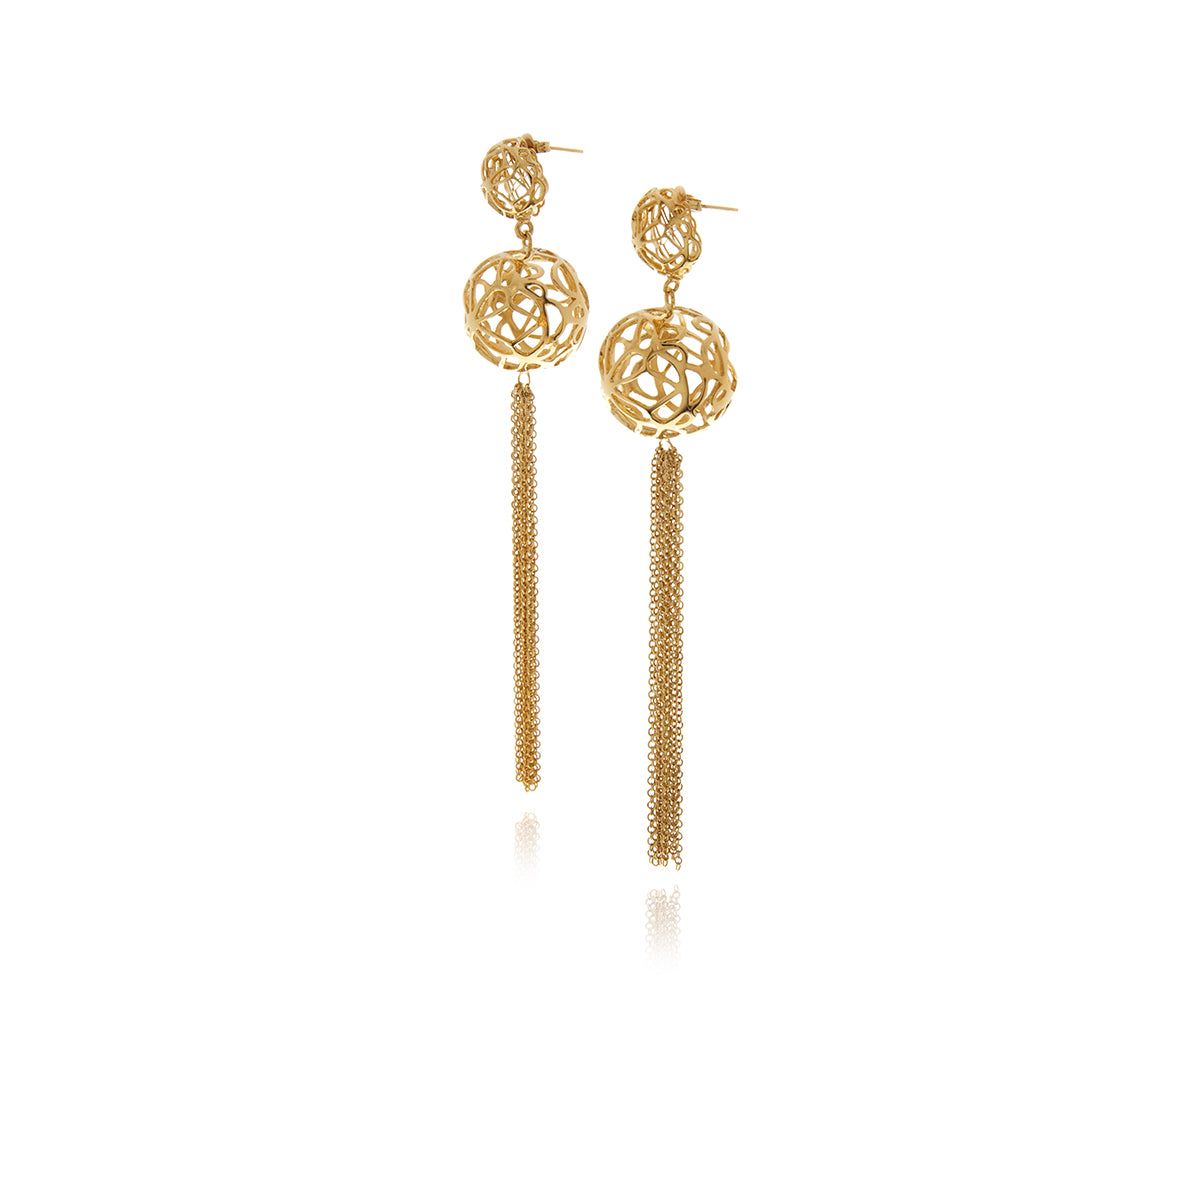 Signature Sphere Gold Earrings - MCK Brands